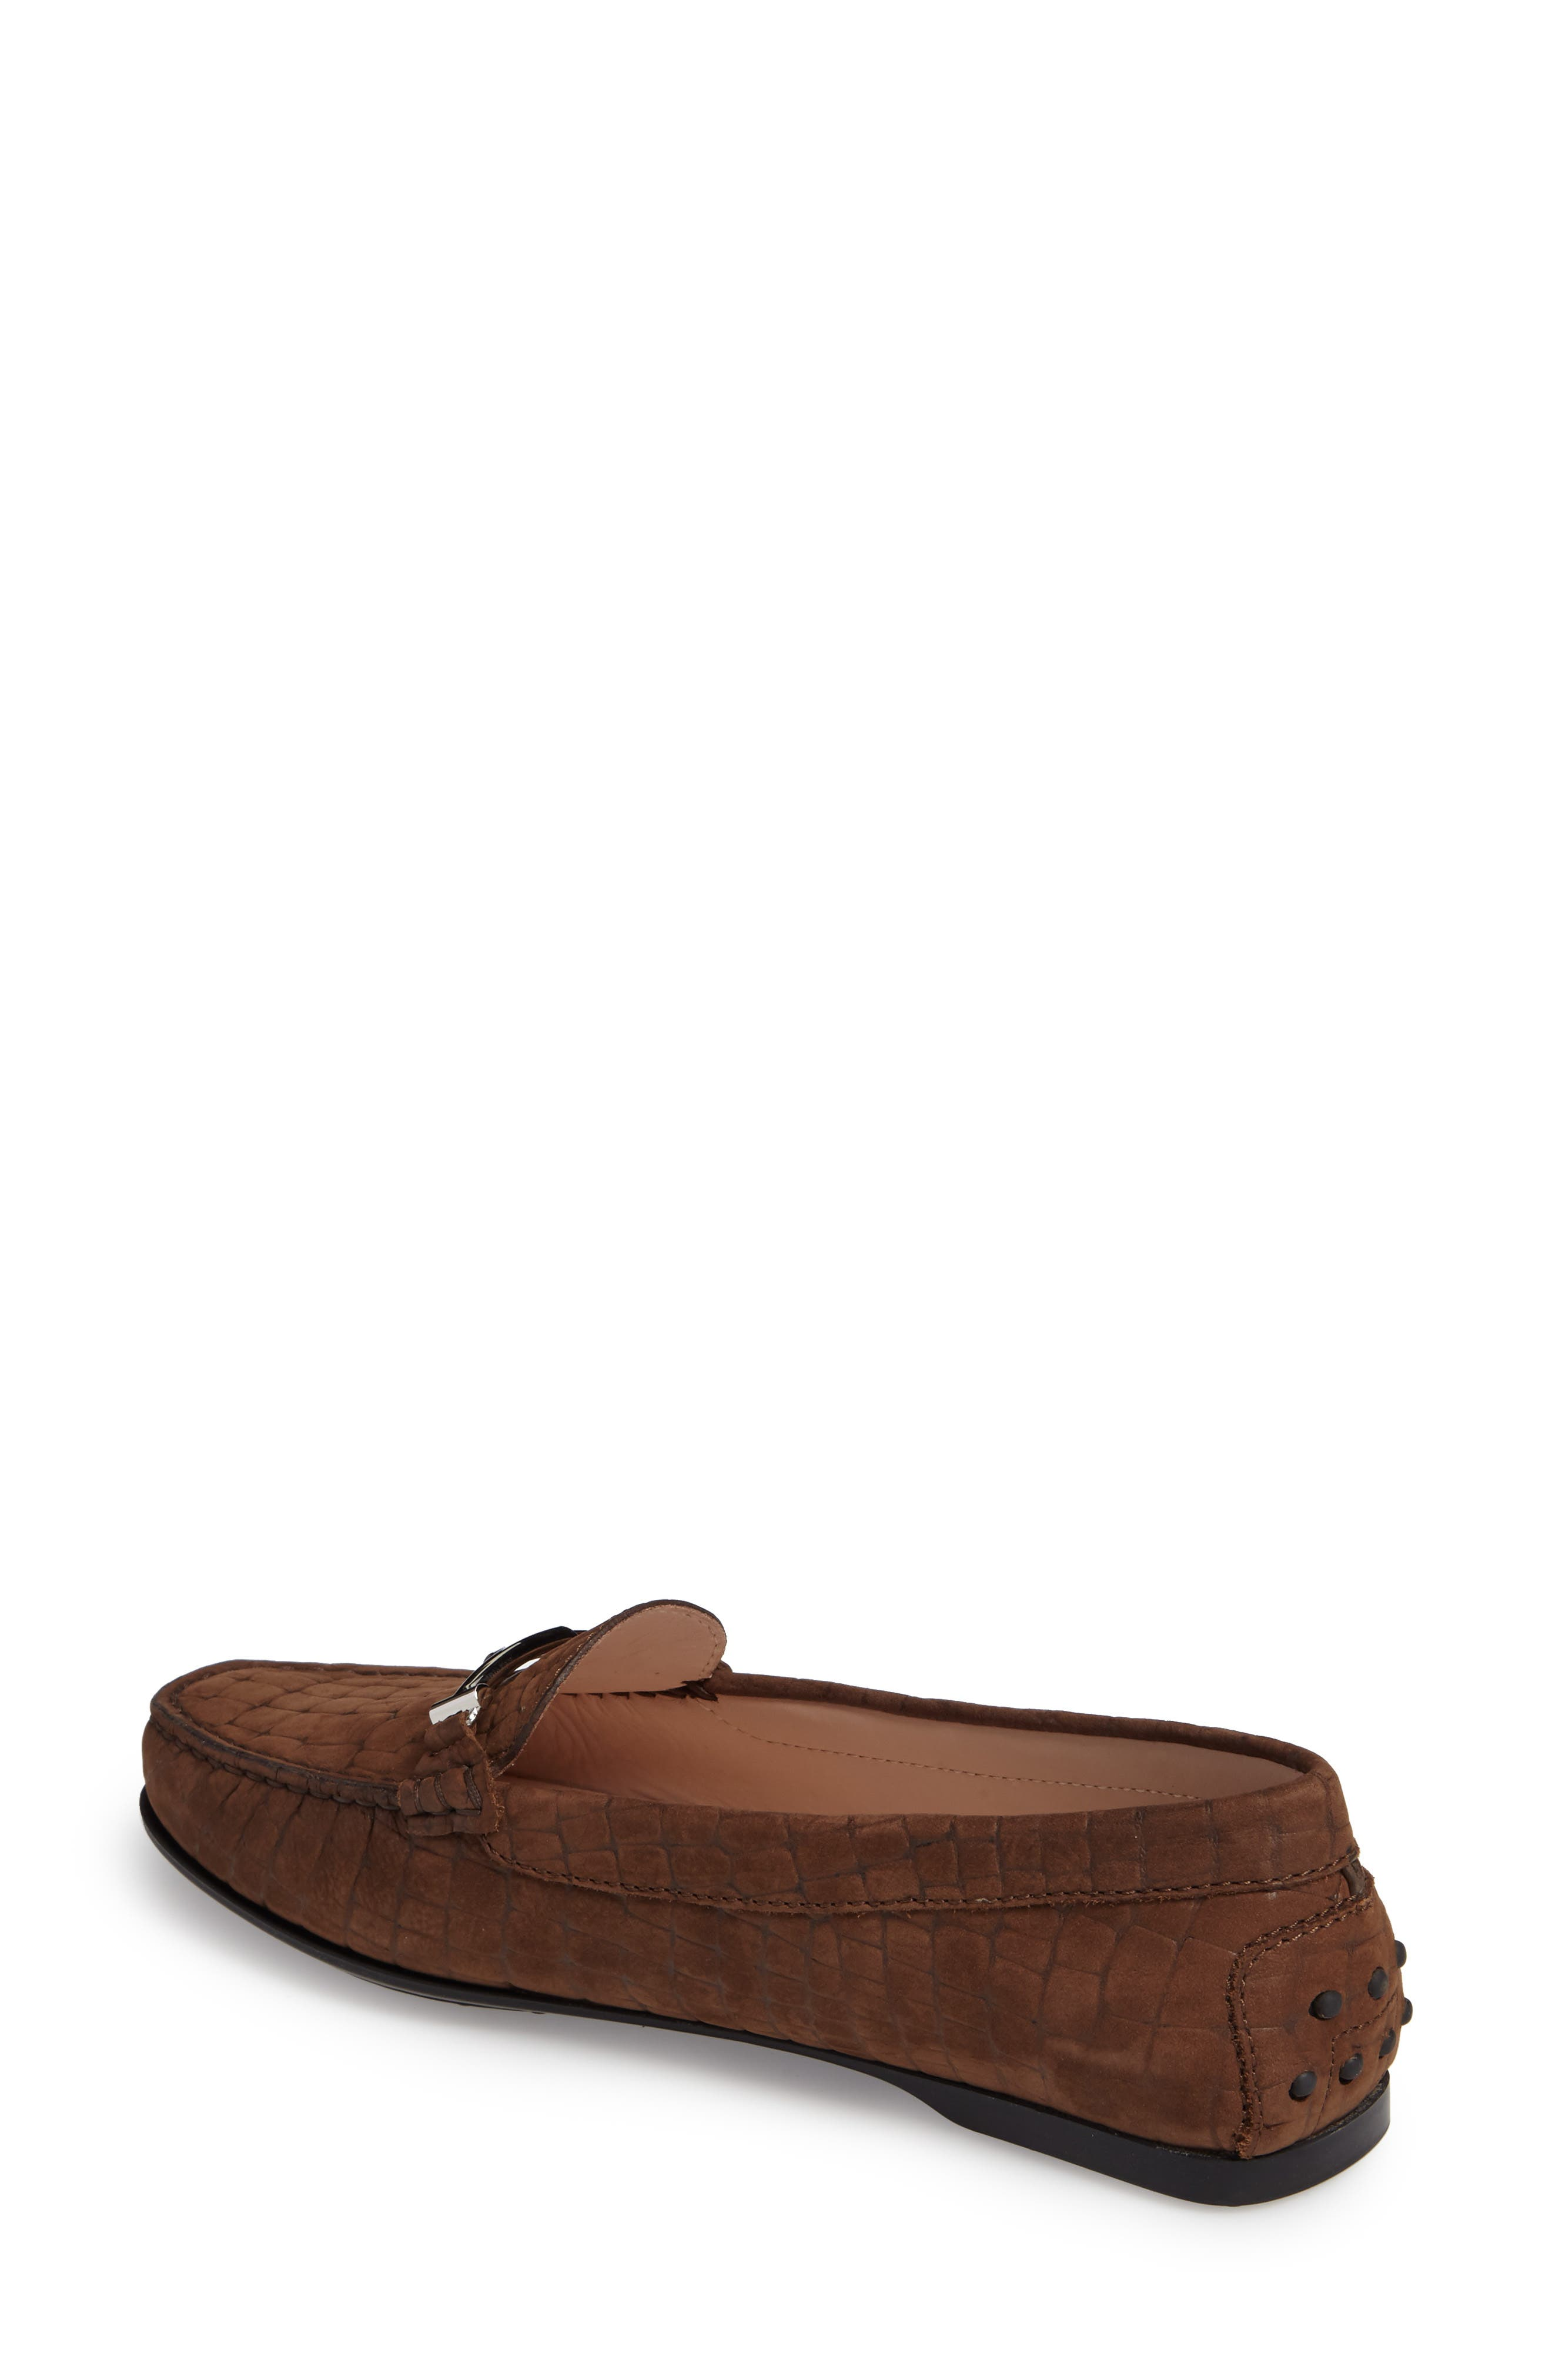 Tods Croc Embossed Double T Loafer,                             Alternate thumbnail 2, color,                             249